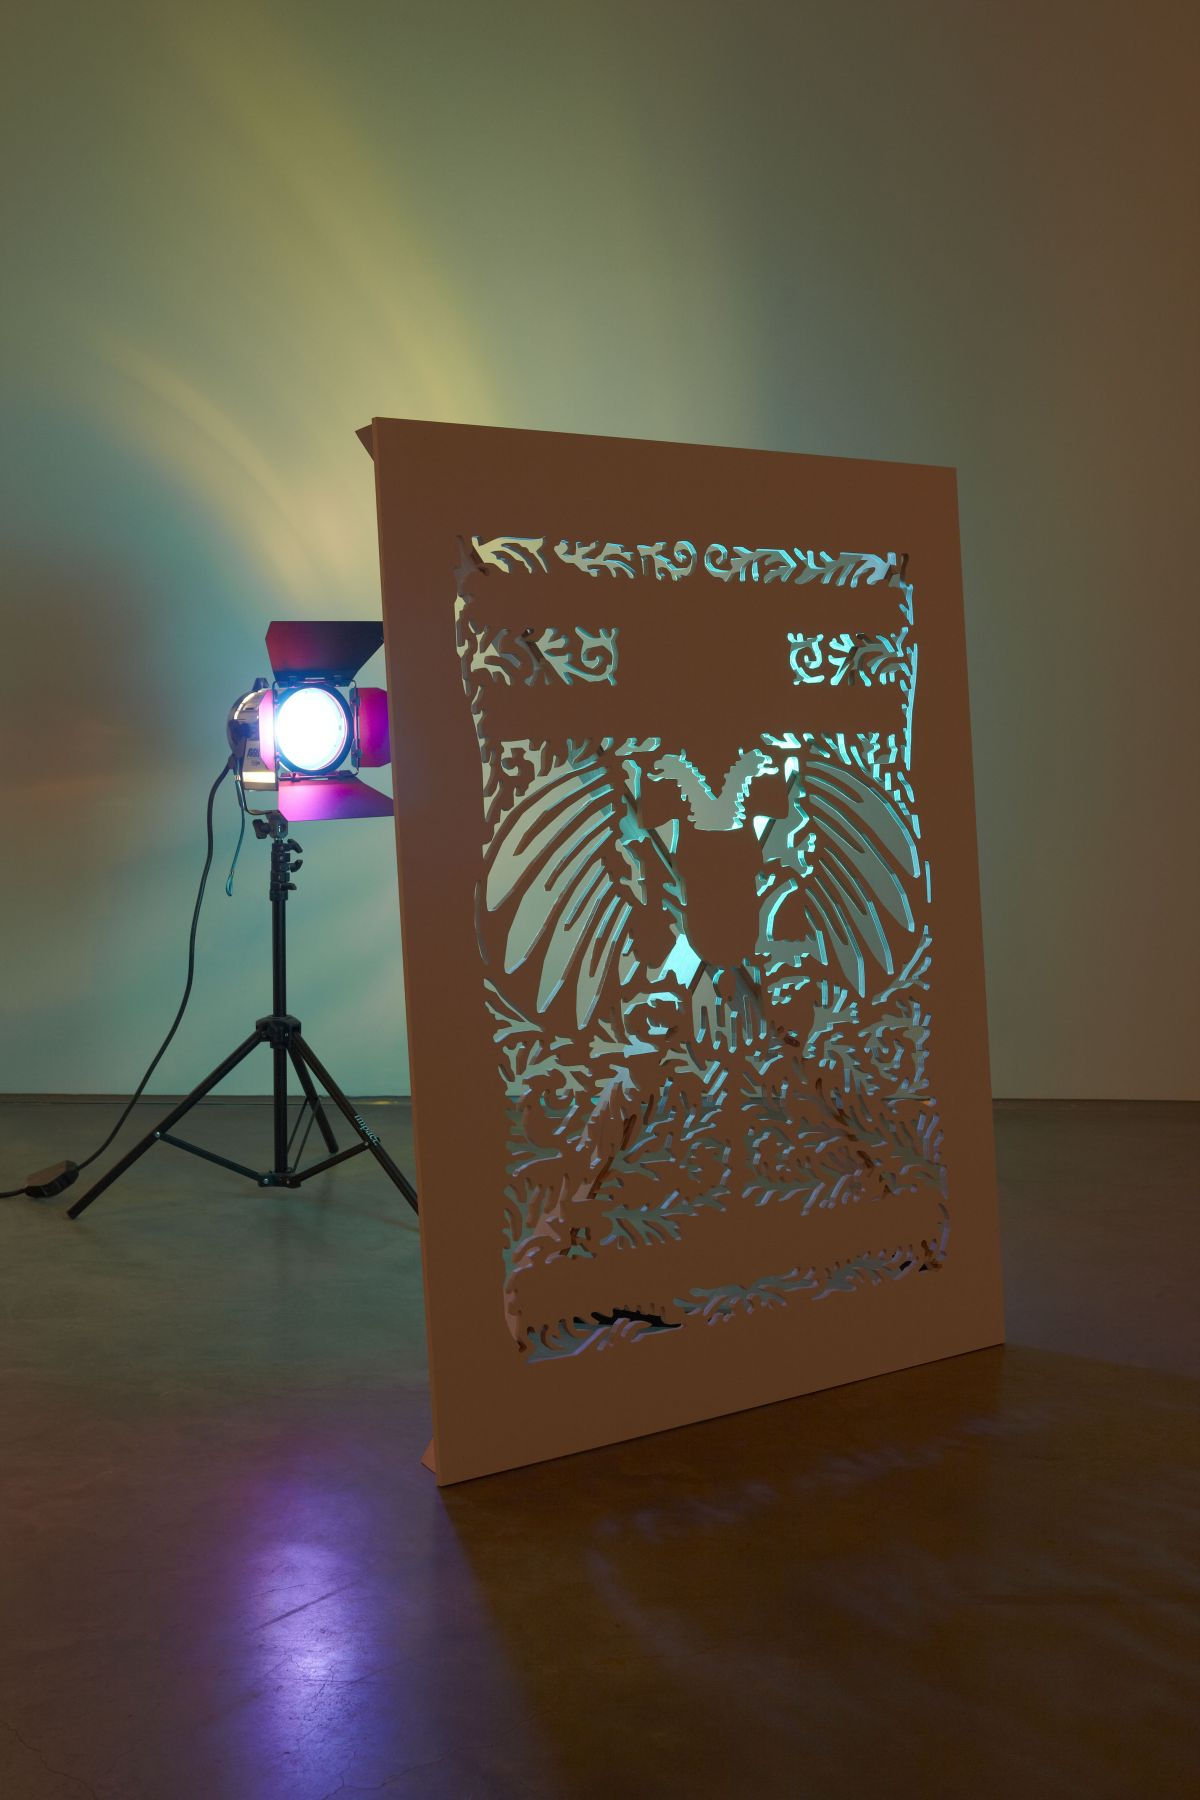 a light sculpture by artist sue de beer exhibited in a nyc art gallery